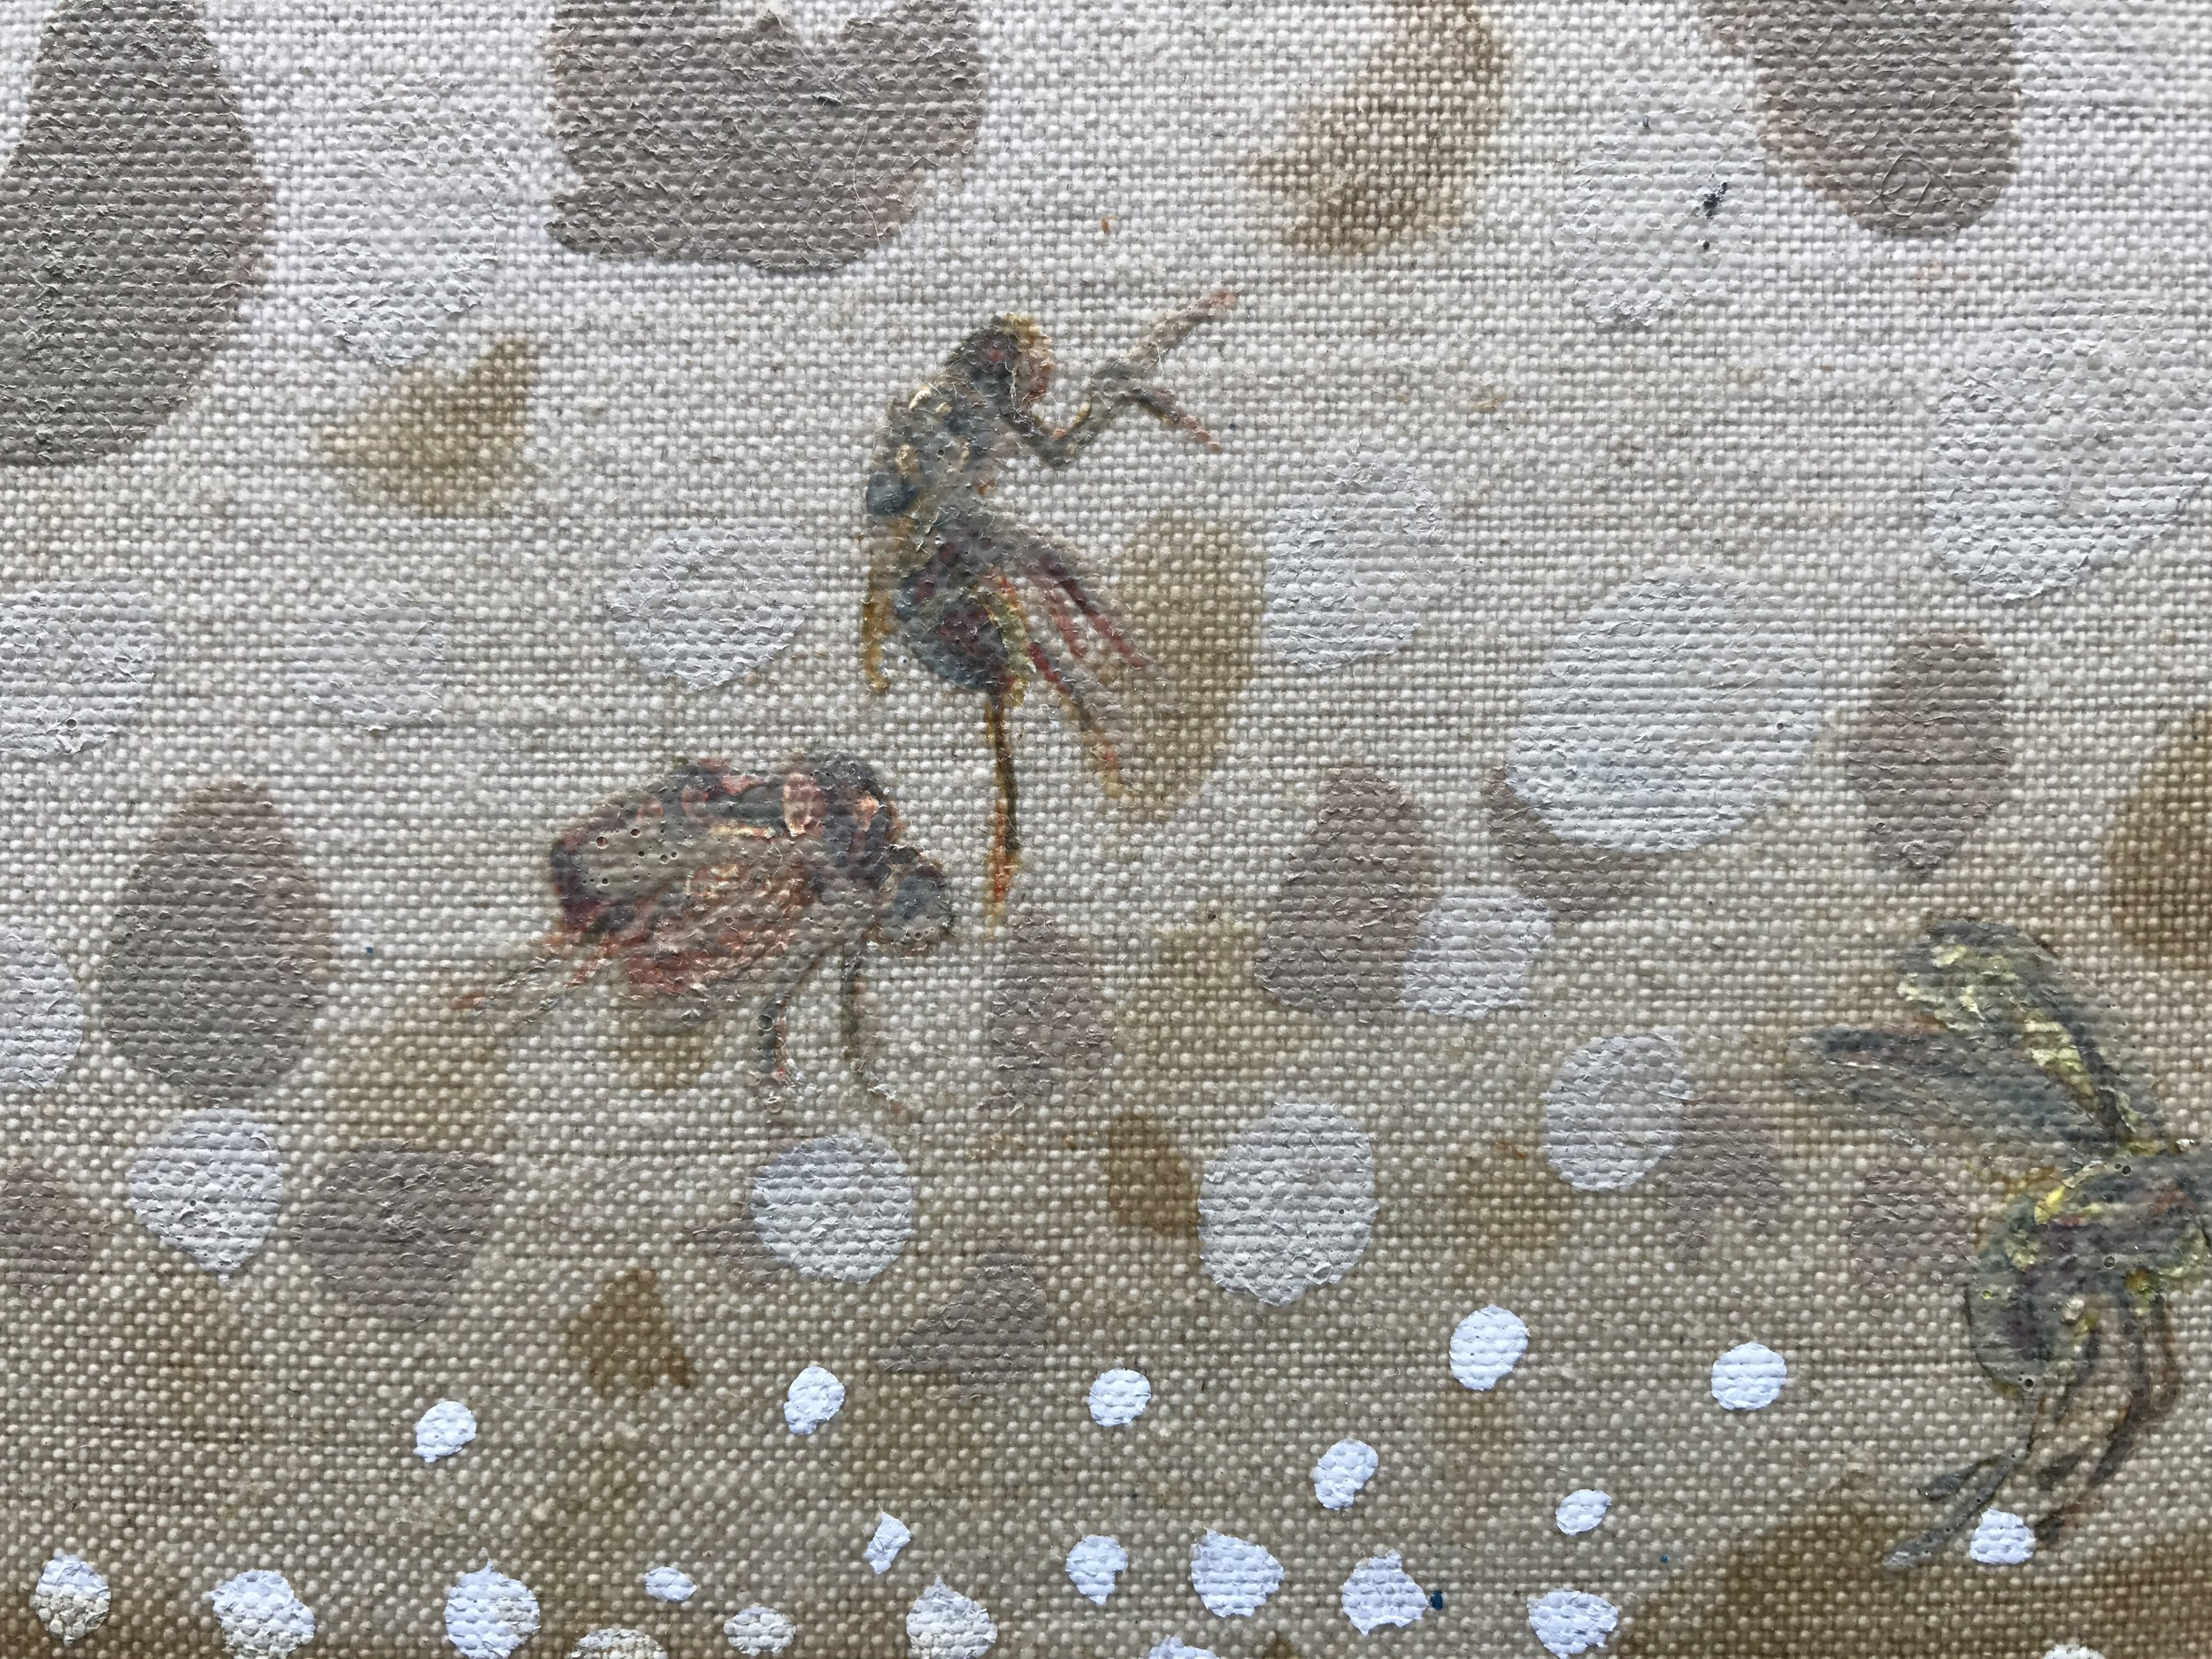 THE CLOSED MOUTH, 1997, detail of mosquitoes